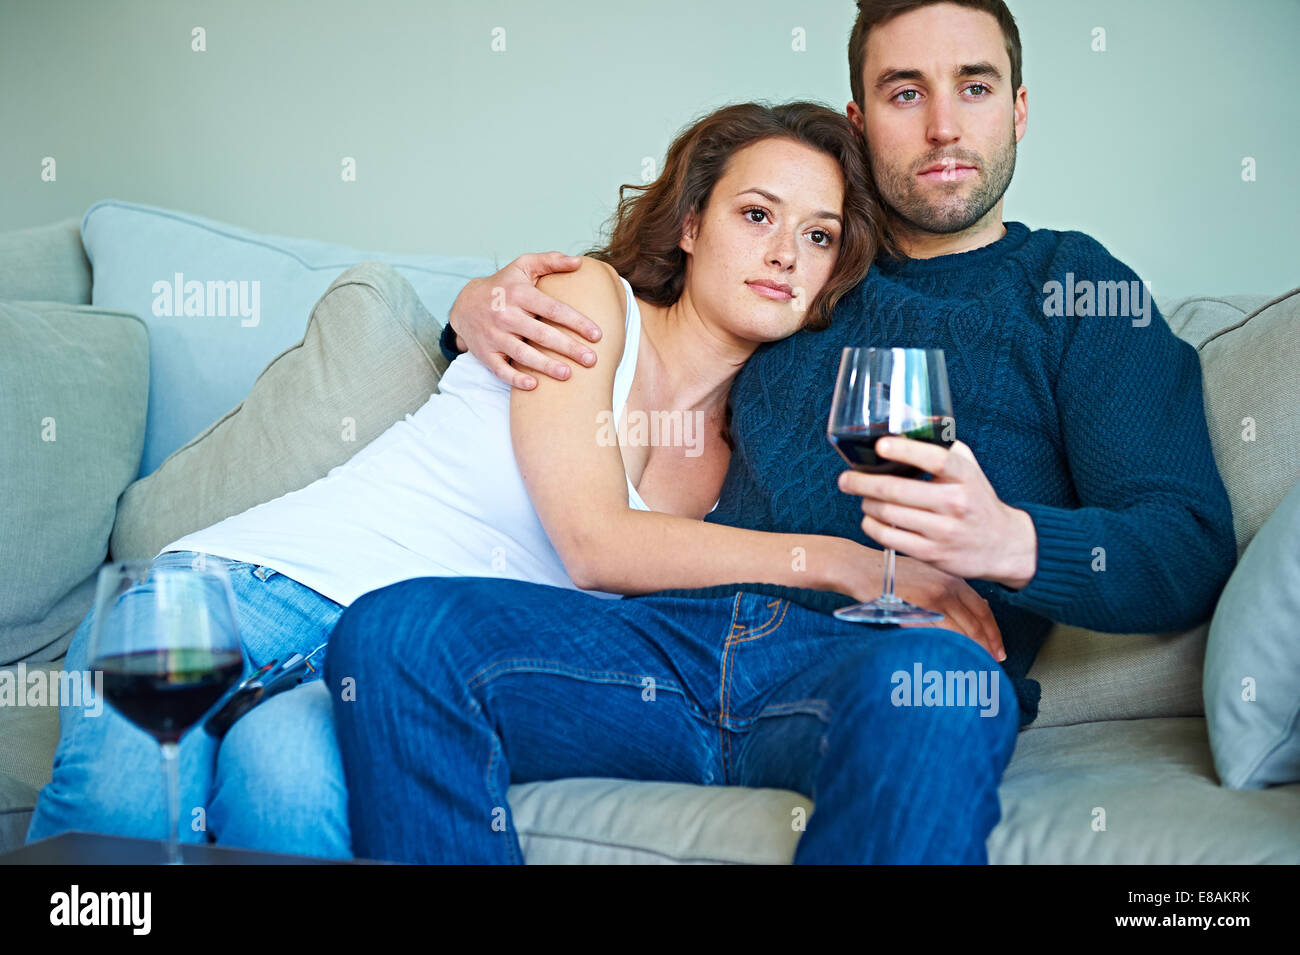 Couple enjoying wine sur canapé Photo Stock